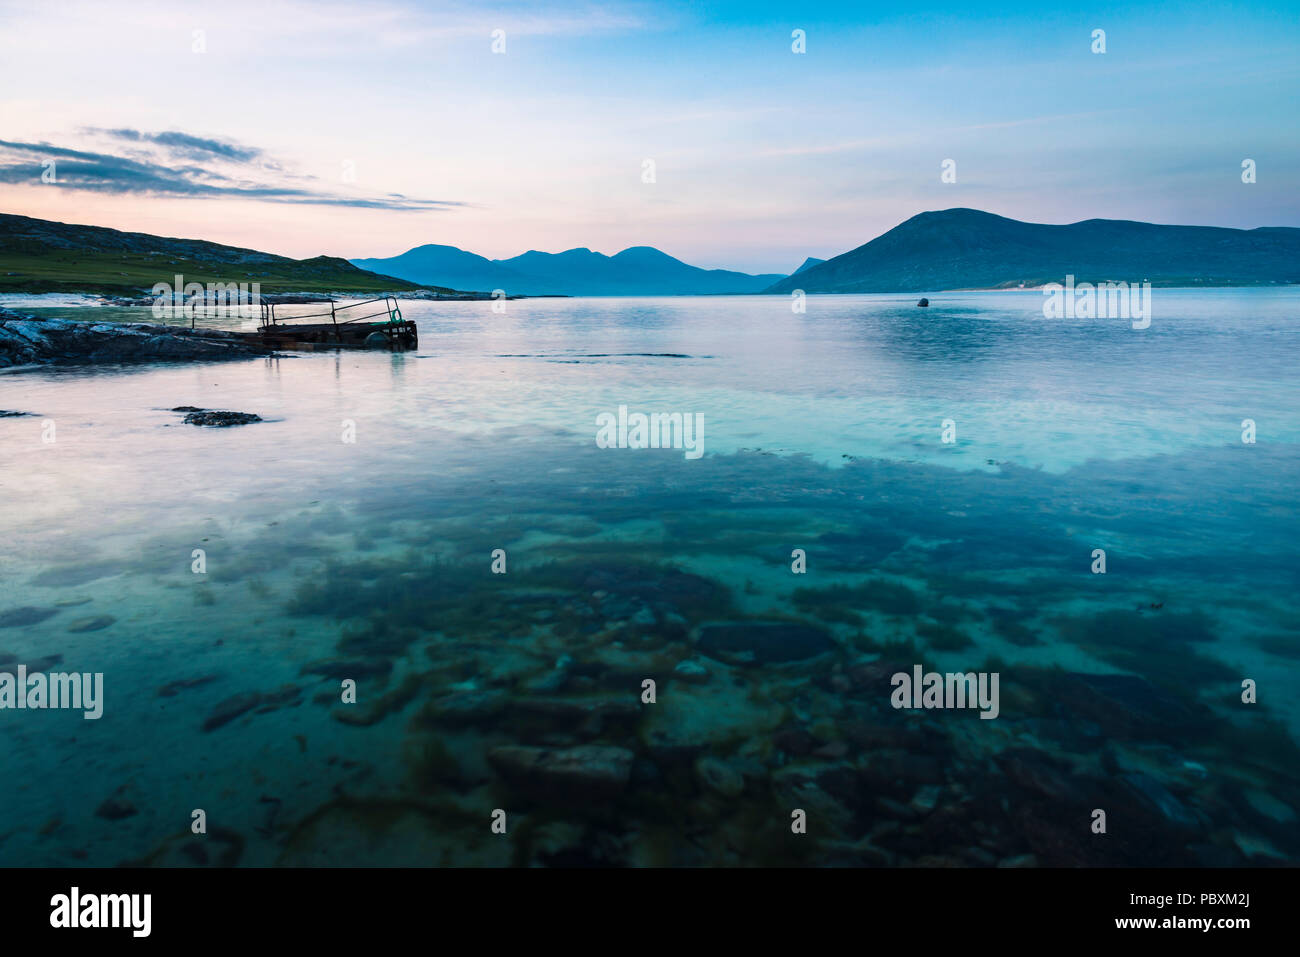 Paible beach on Taransay, Isle of Harris, Scotland, UK, Europe - Stock Image